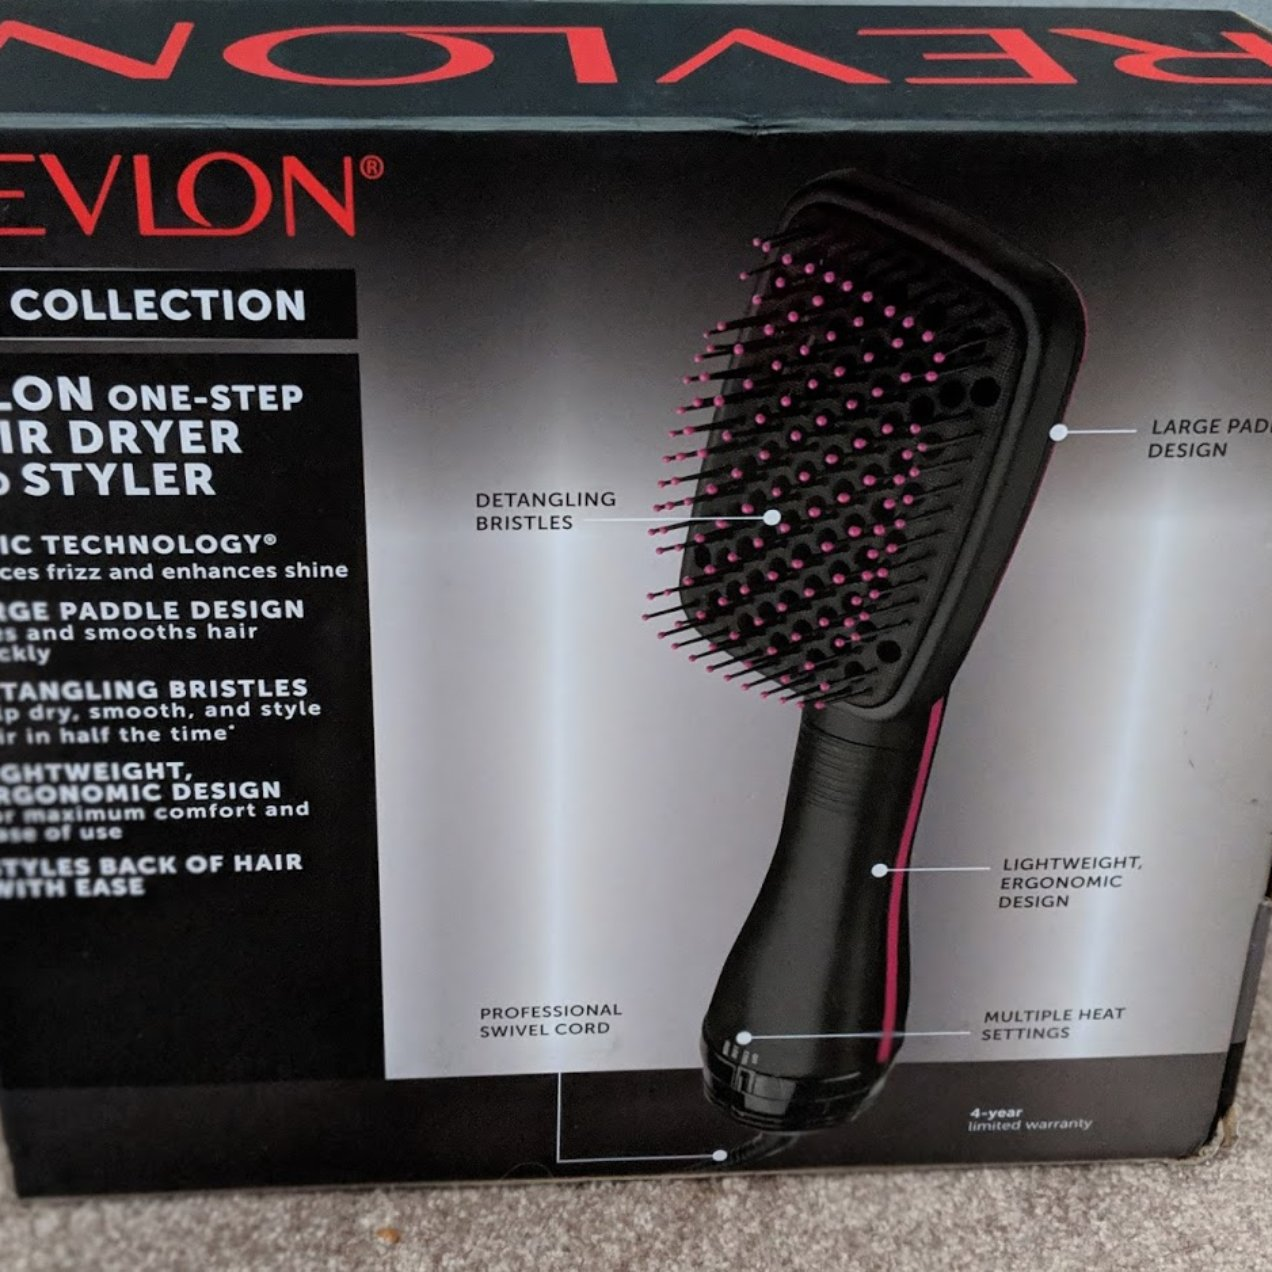 Revlon One-Step Hair Dryer & Styler!